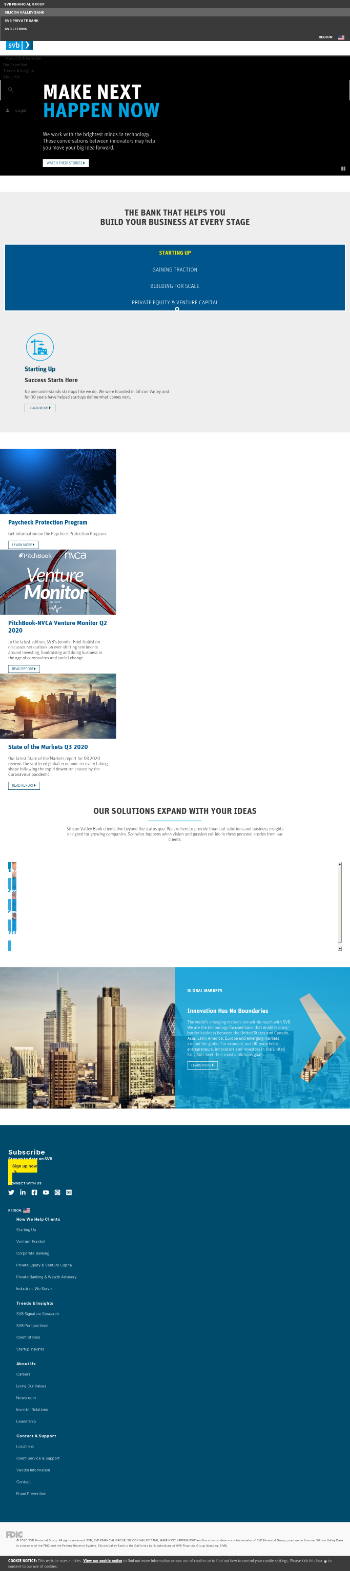 SVB Financial Group Website Screenshot